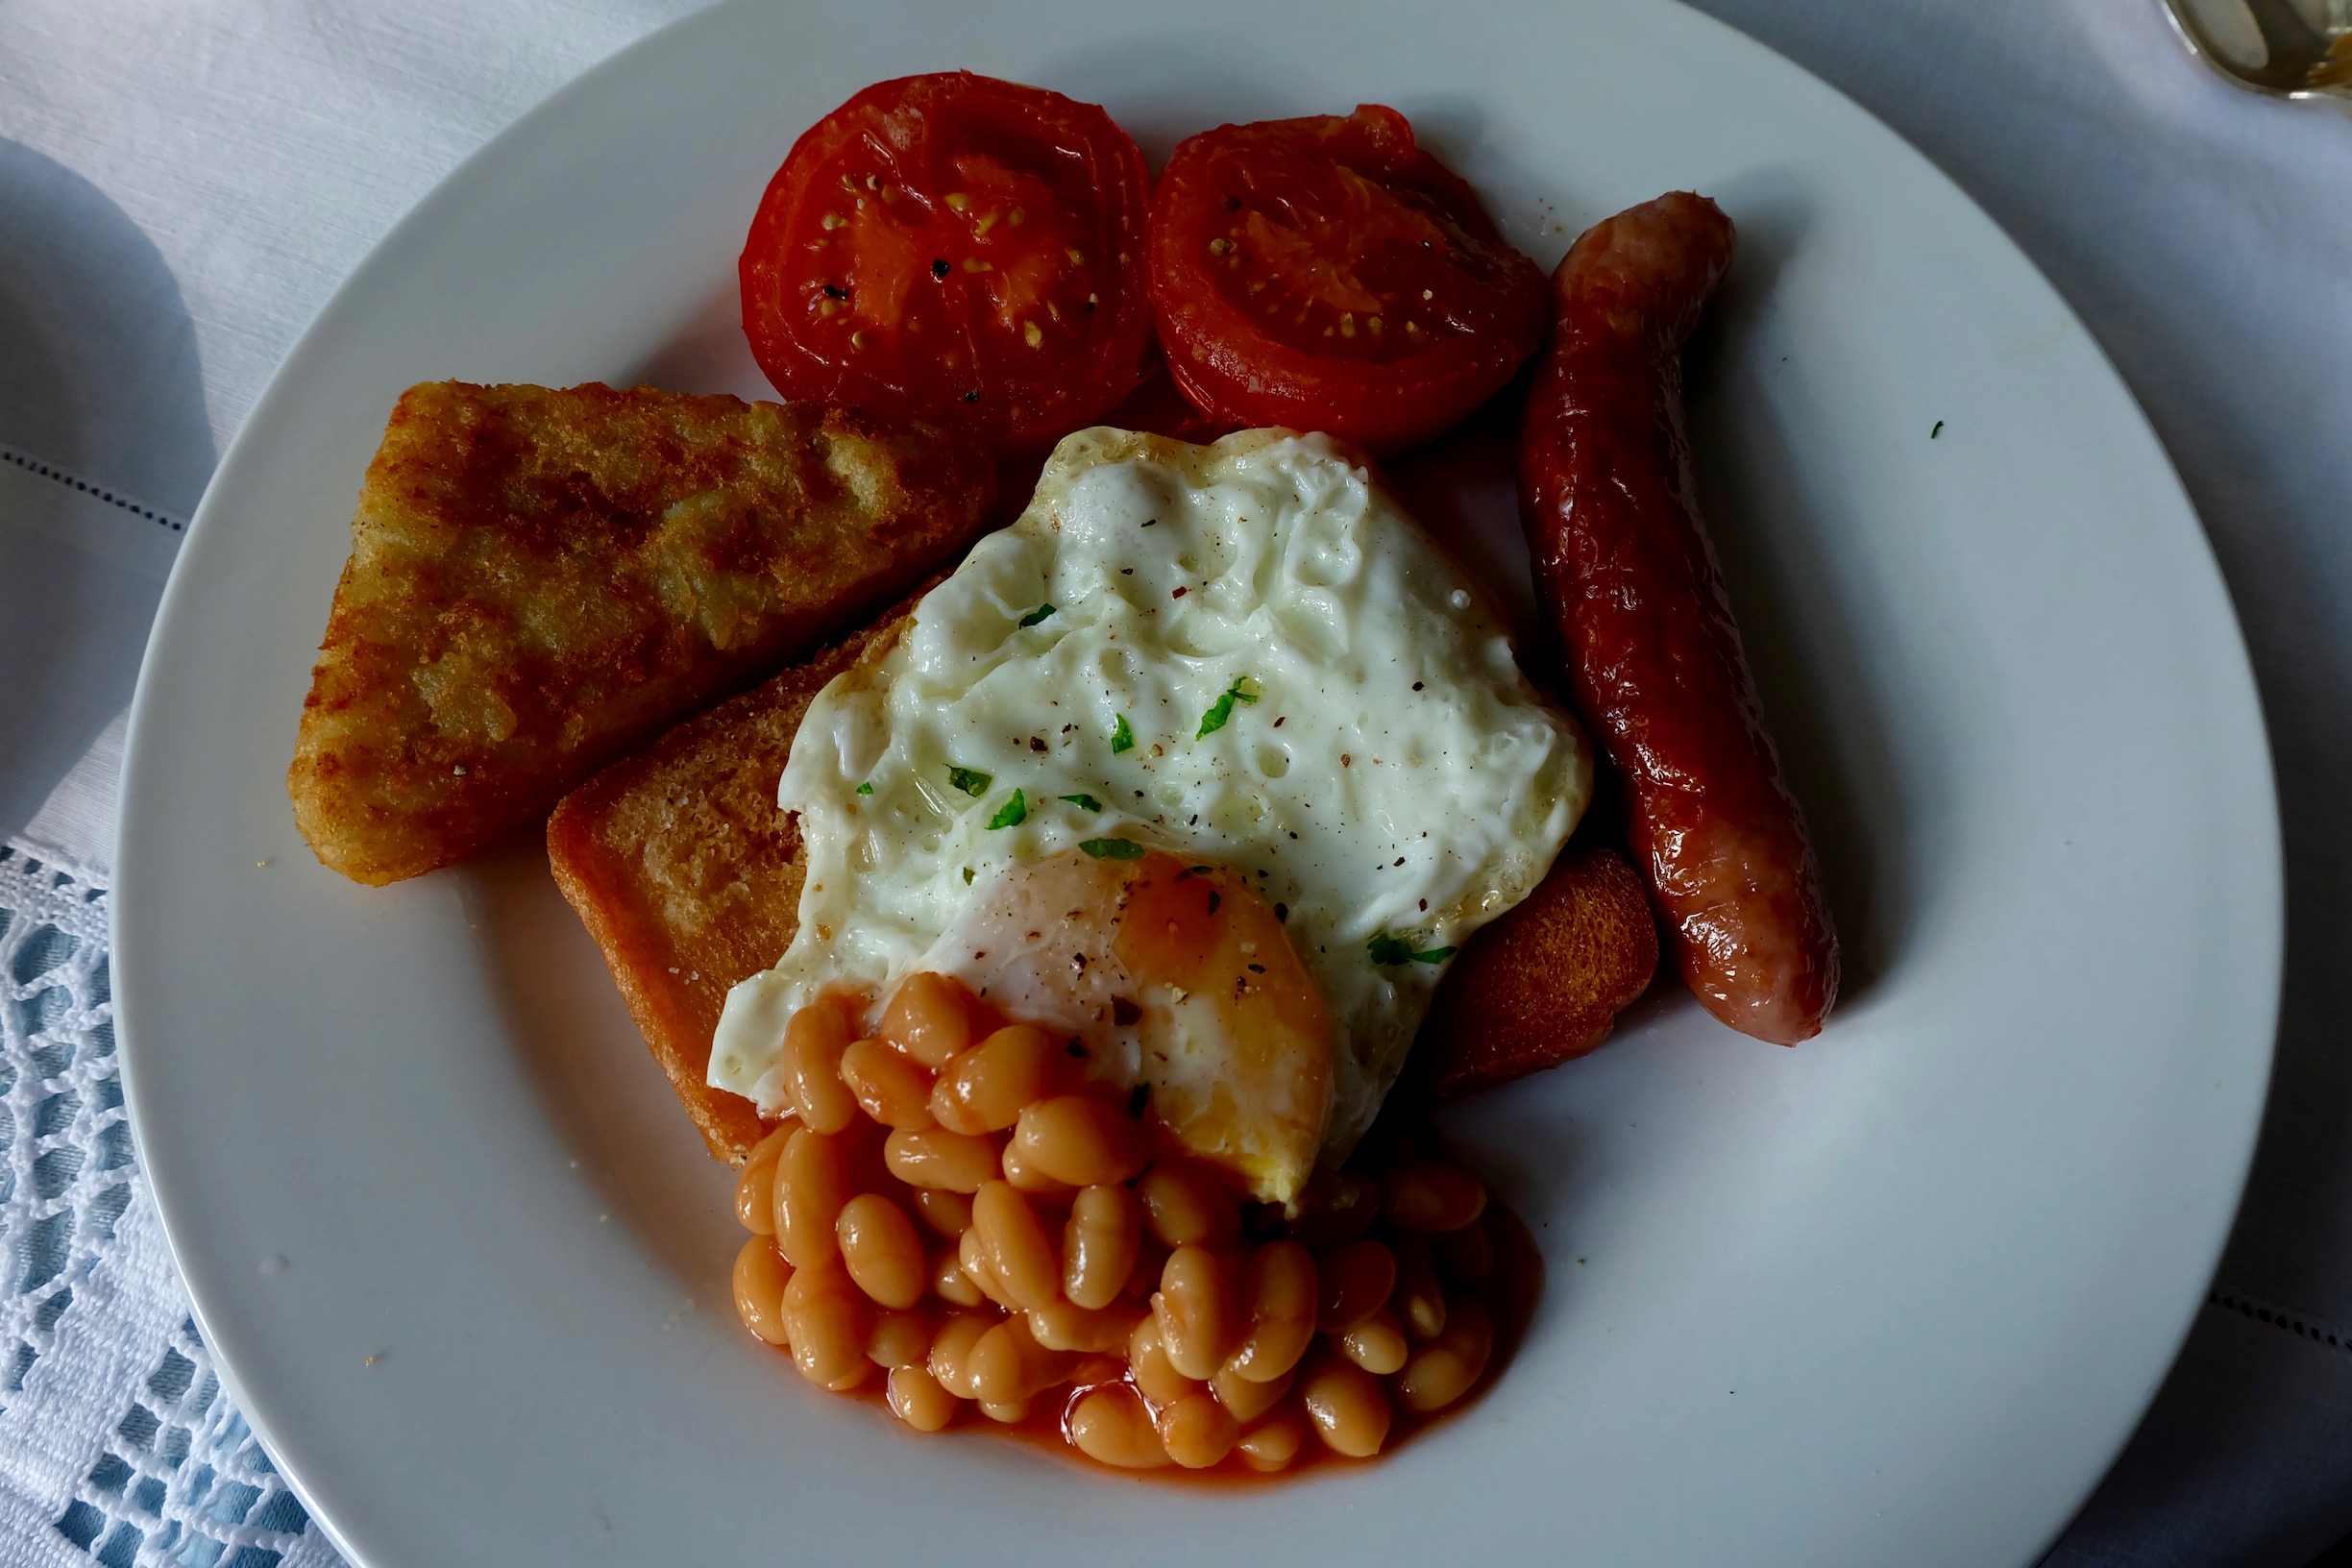 A full English breakfast at the Adelphi